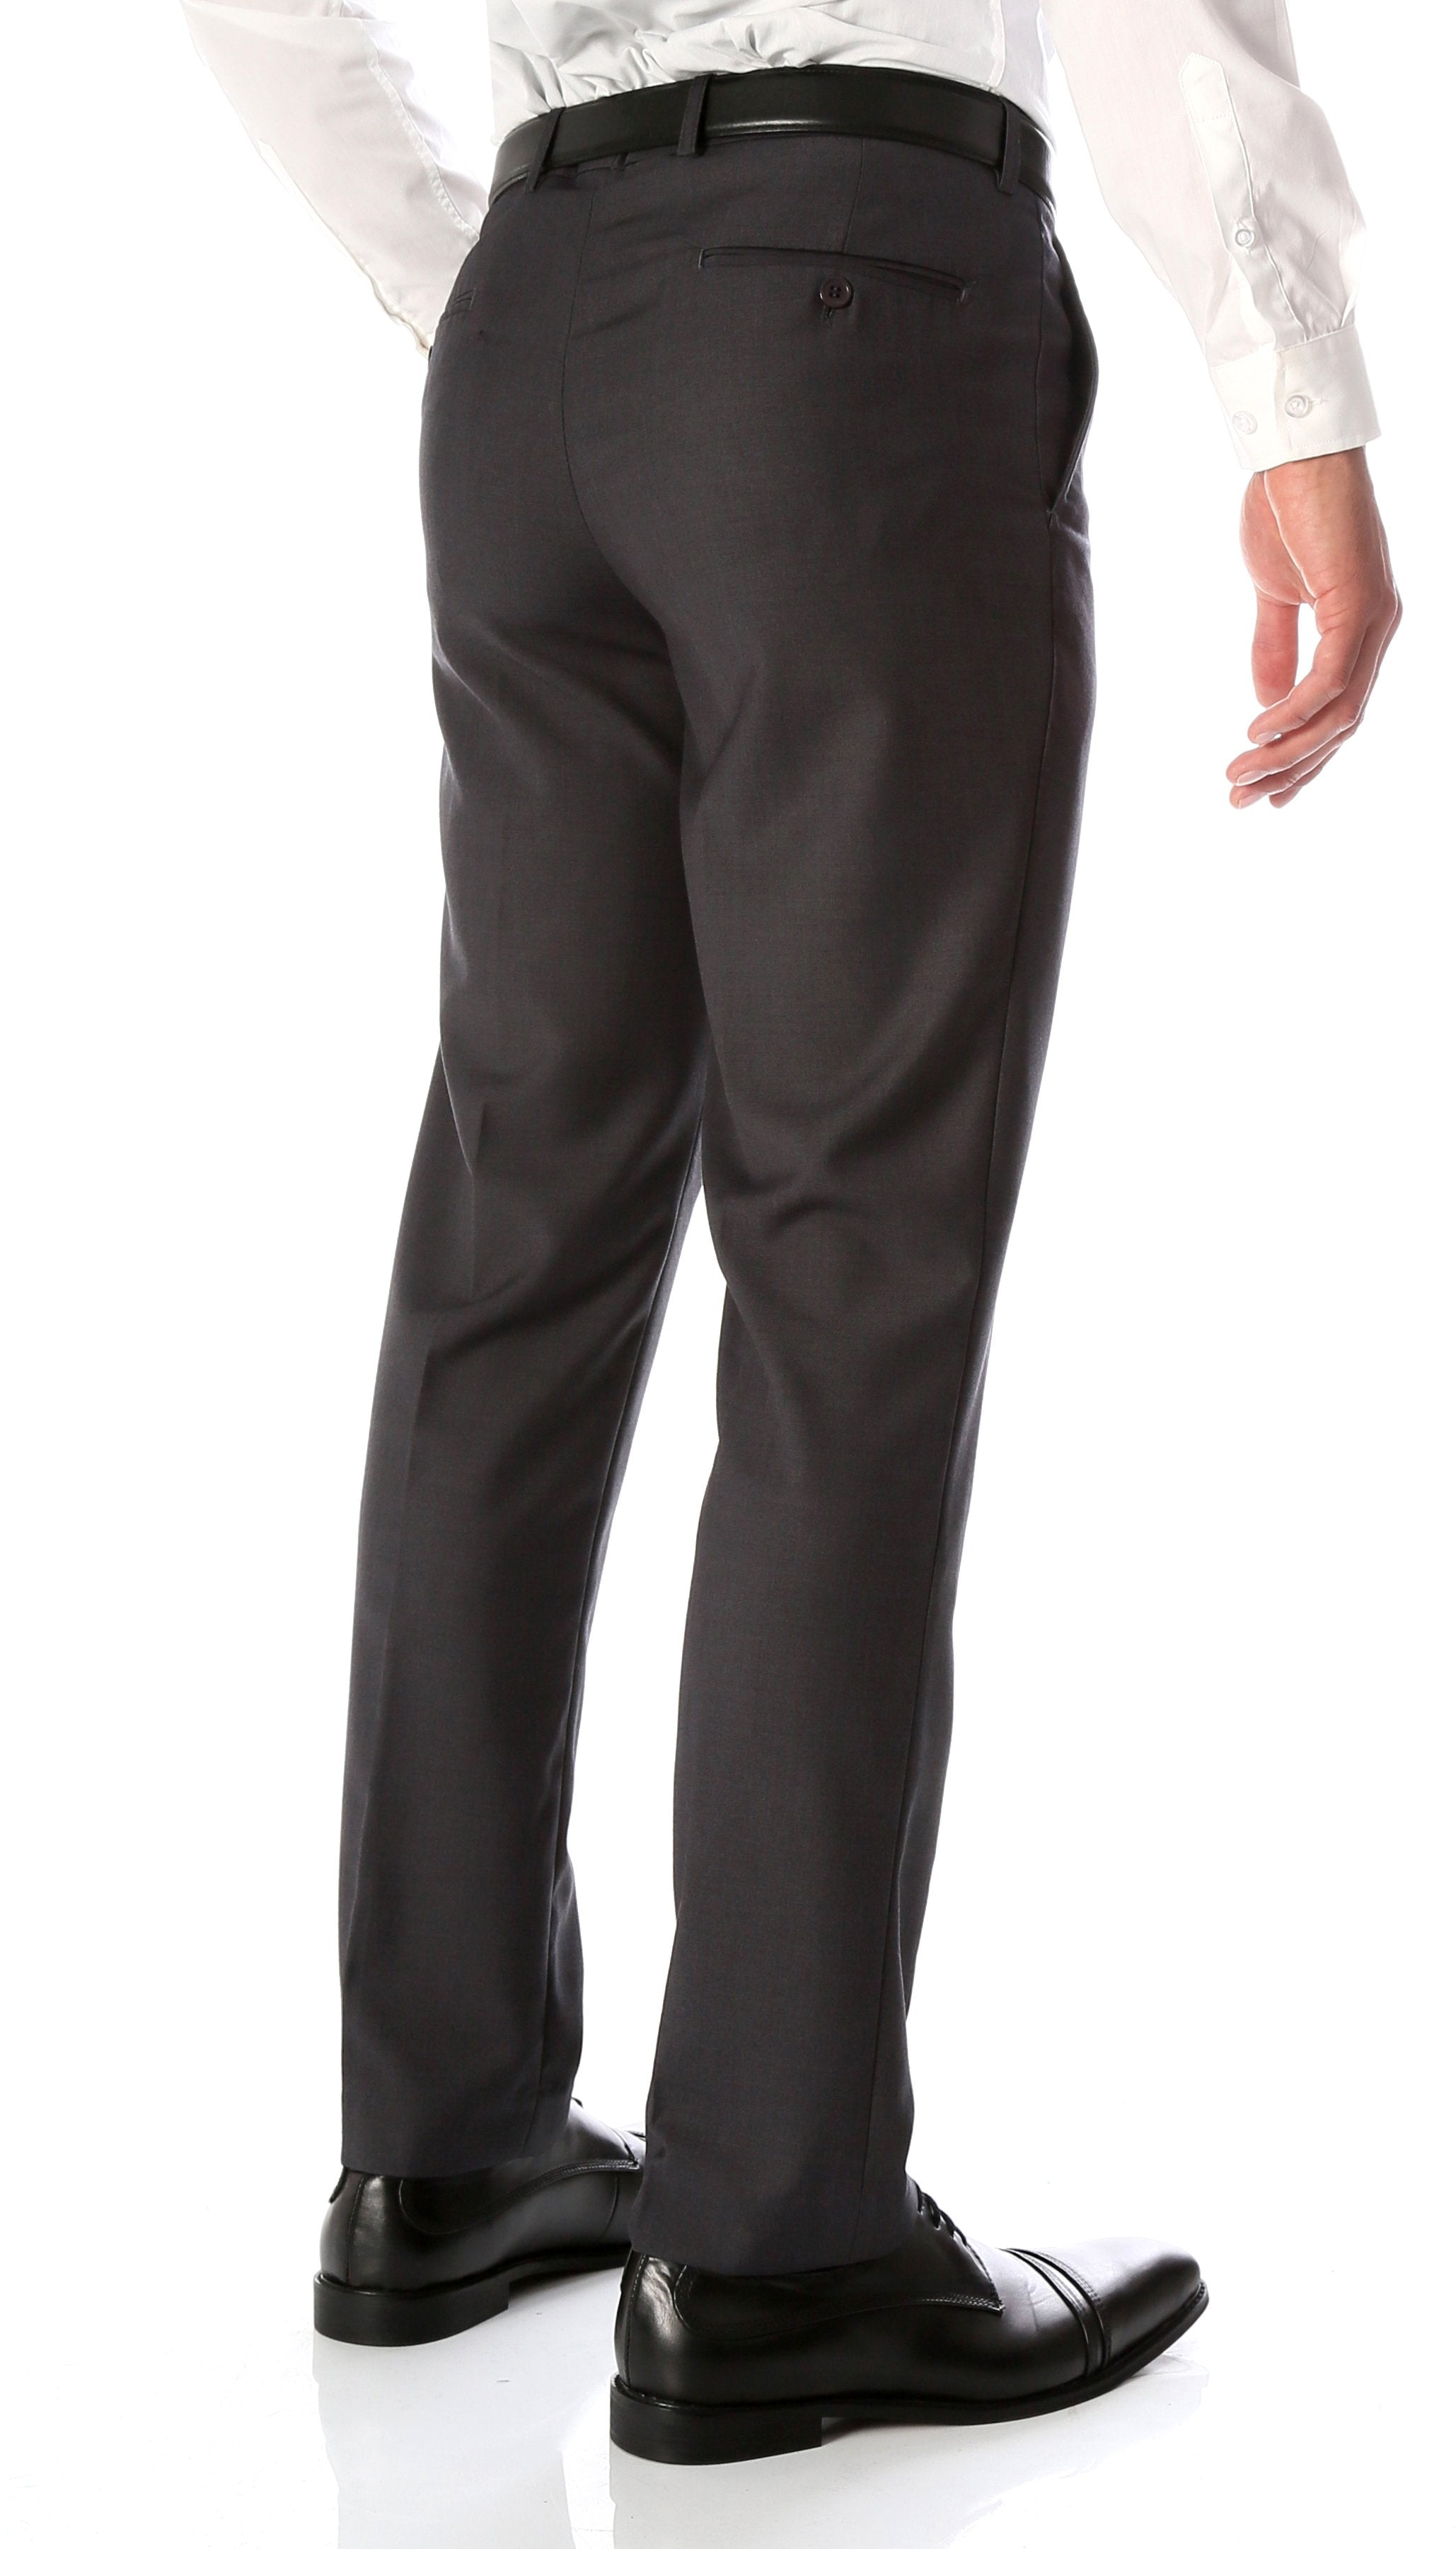 Ferrecci Men's Halo Charcoal Slim Fit Flat-Front Dress Pants - Giorgio's Menswear